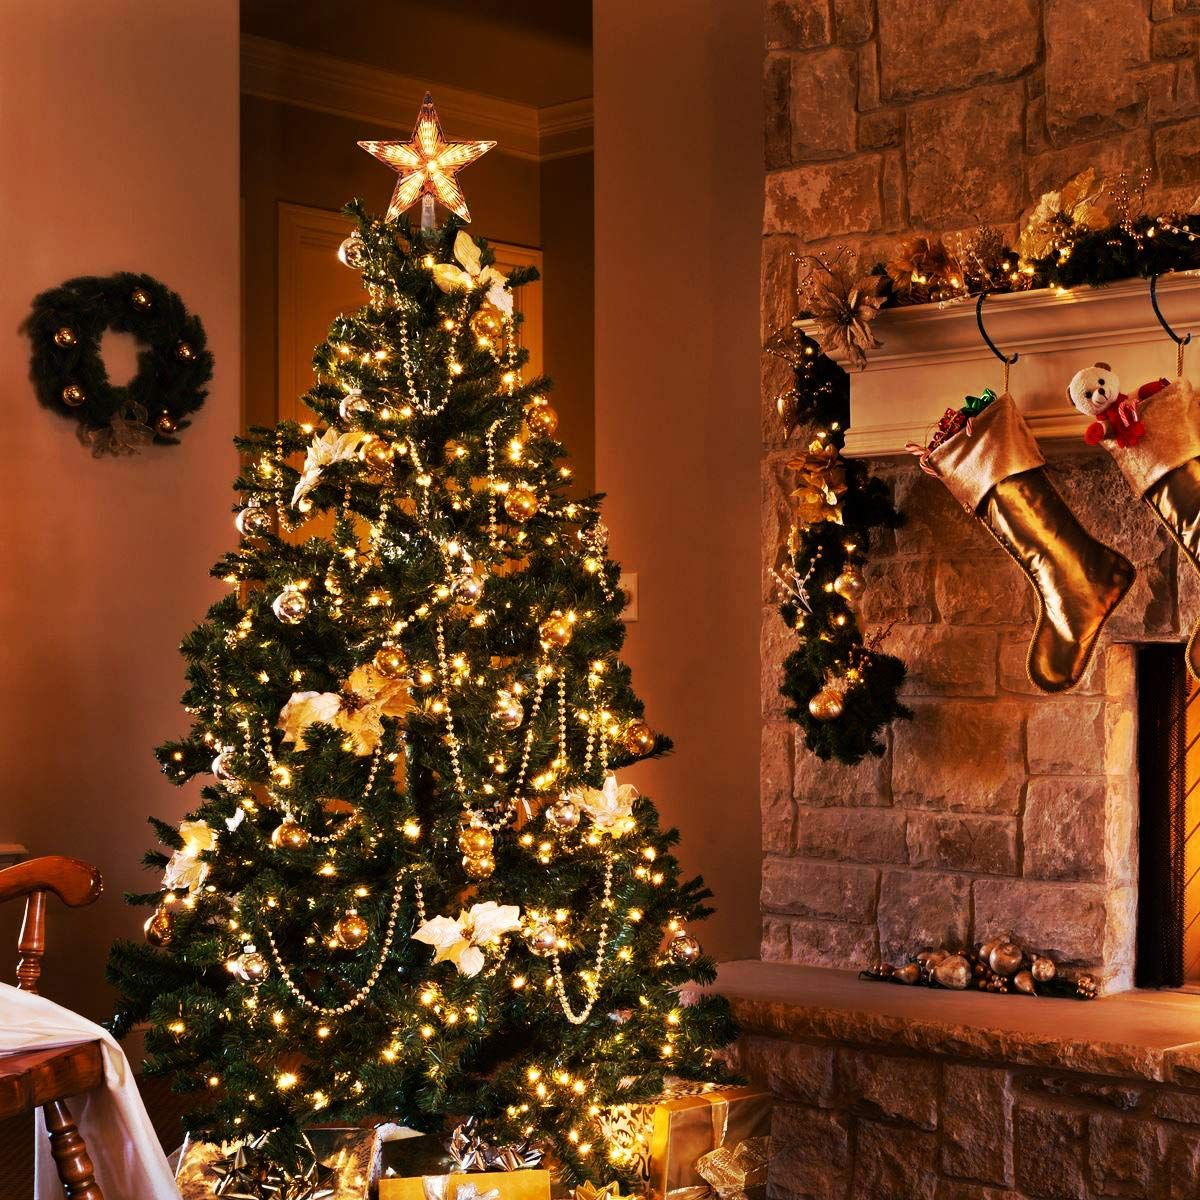 Amazon Com 9 Inch Lighted Star Tree Topper Yunlights Gold Glittered Vintage Christmas Tree Toppers Lighted Different Christmas Trees Lighted Star Tree Topper